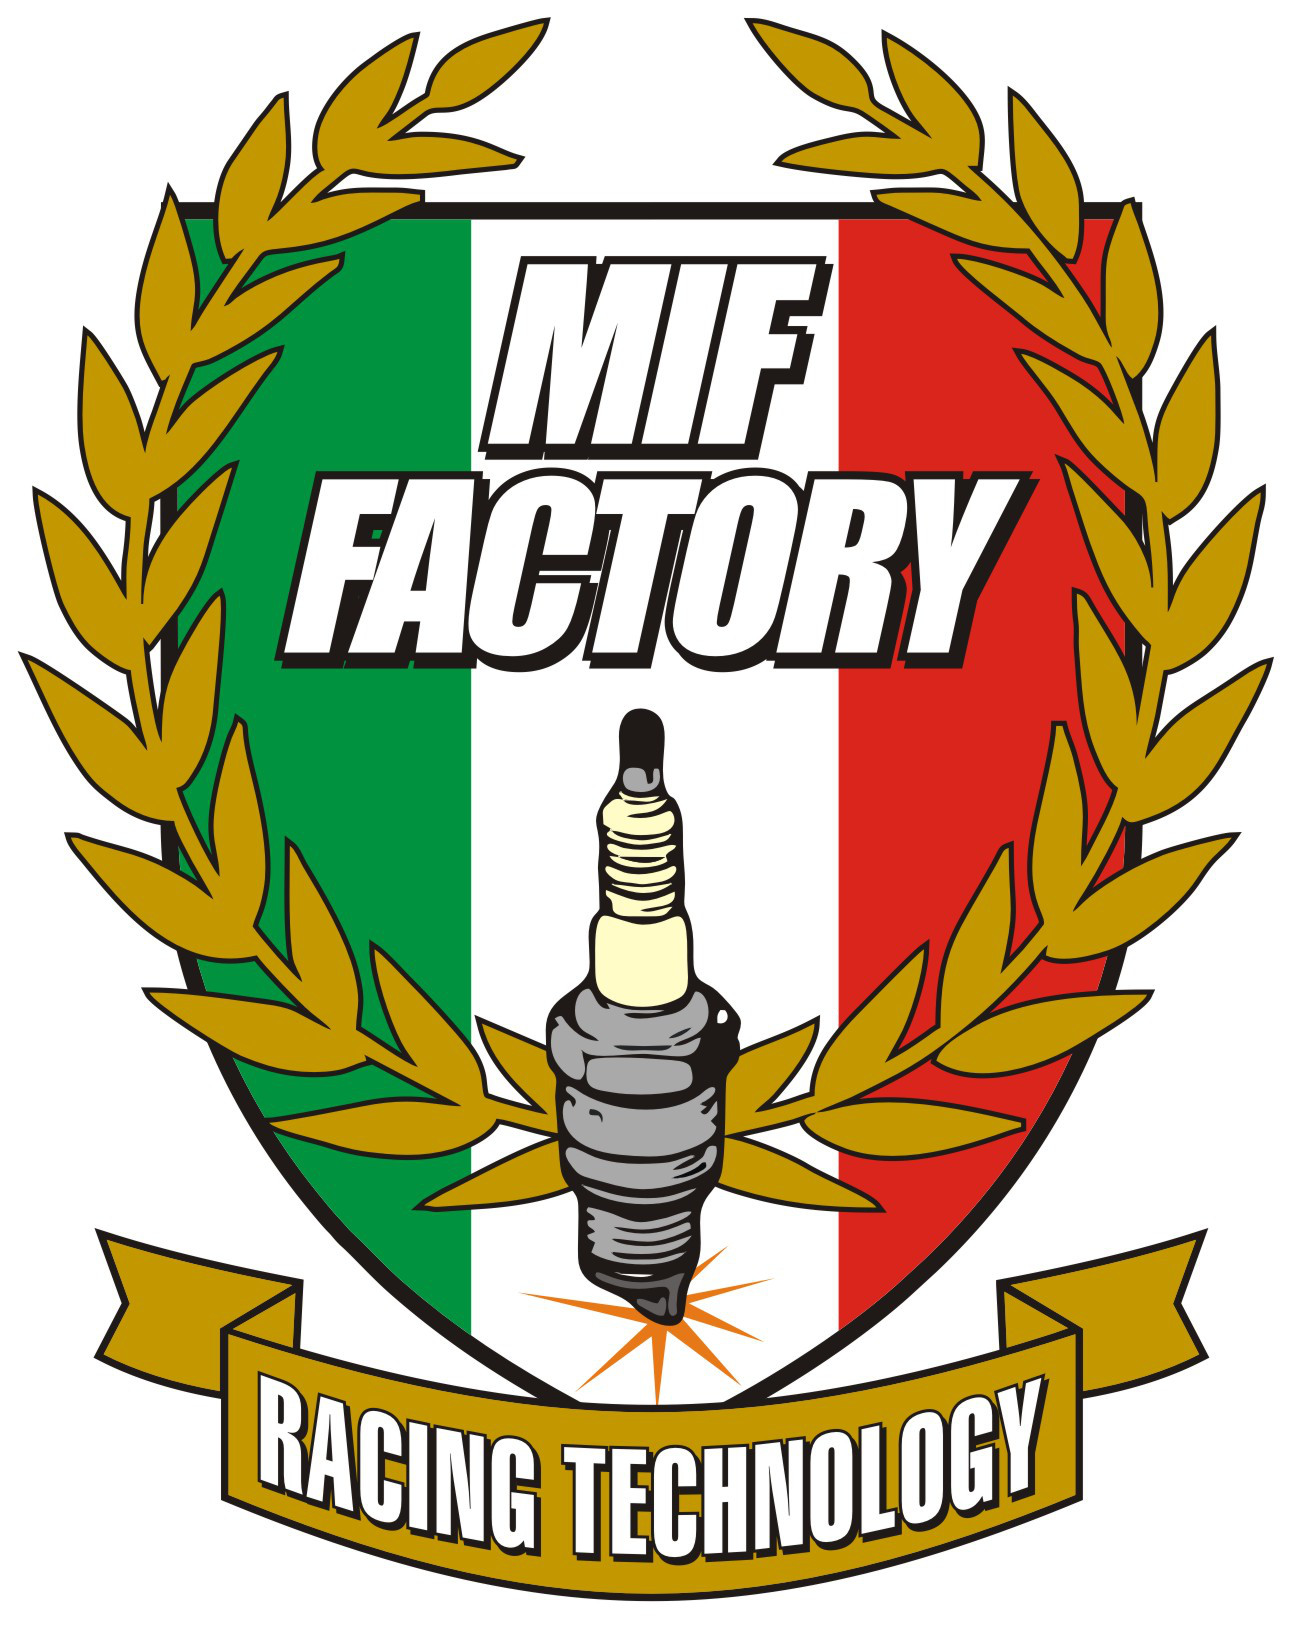 logo Mif Factory Racing Technology